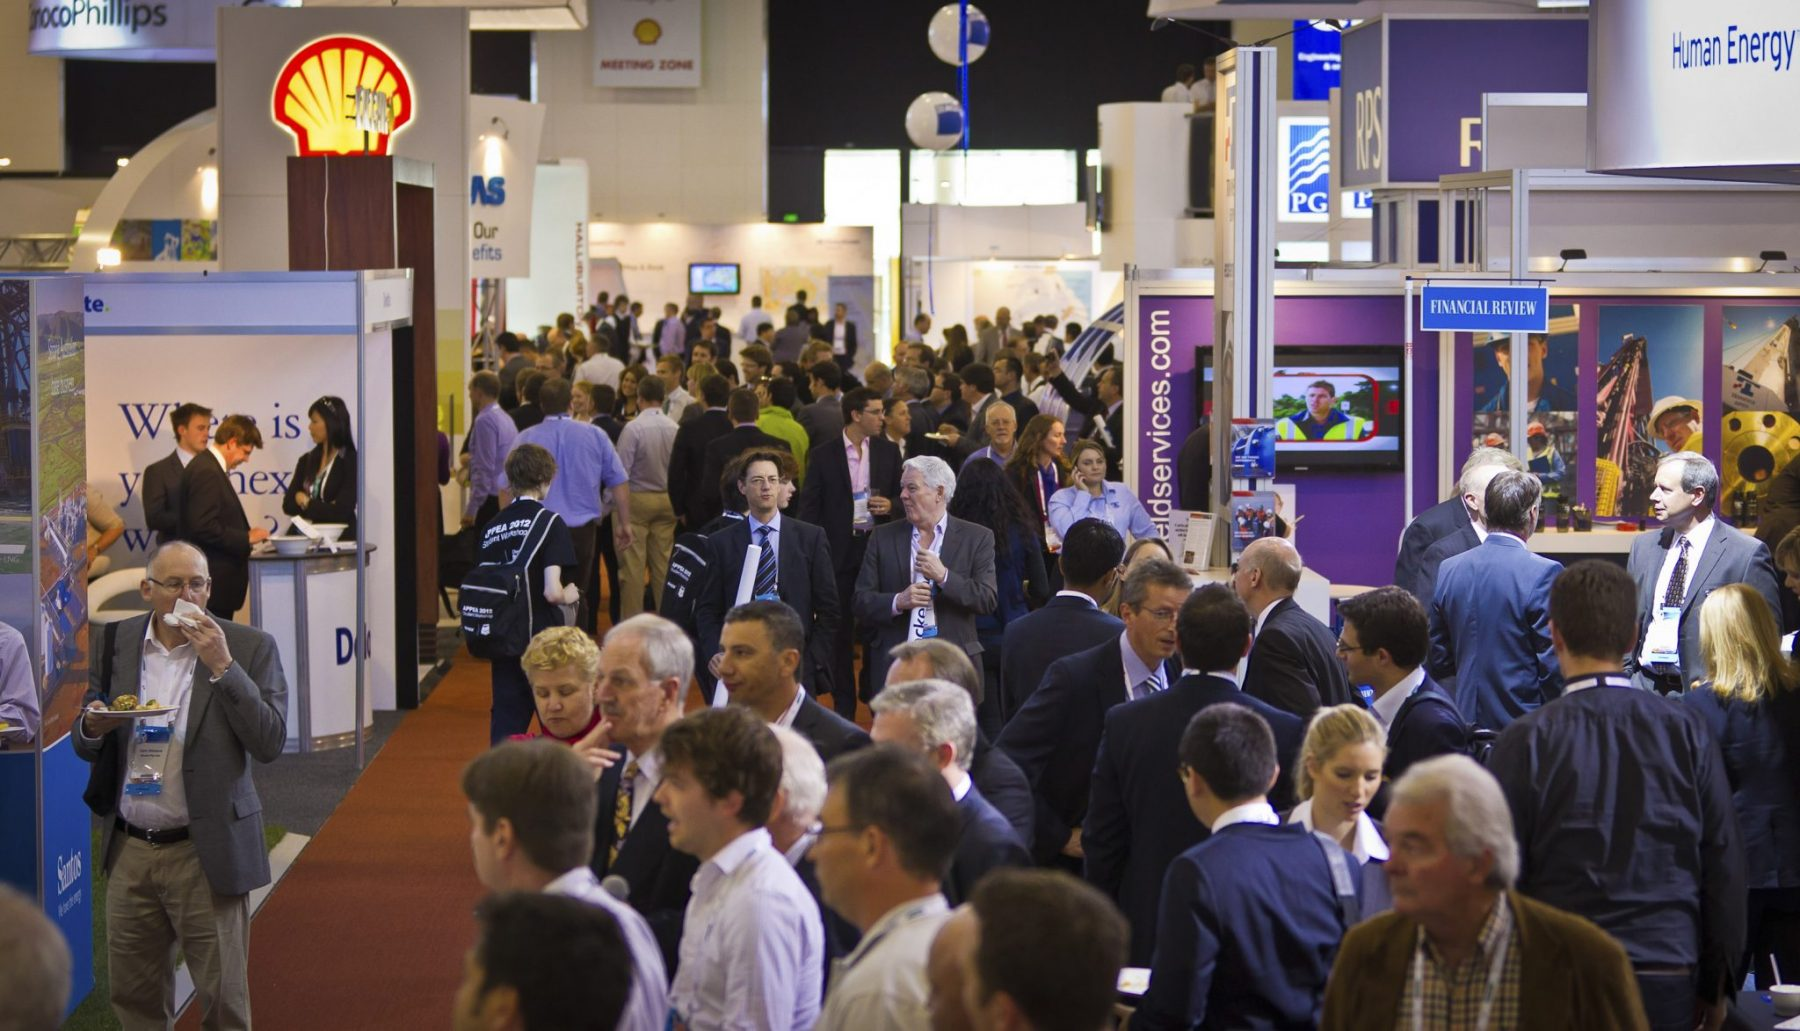 10 ways to attract people to your exhibition stand